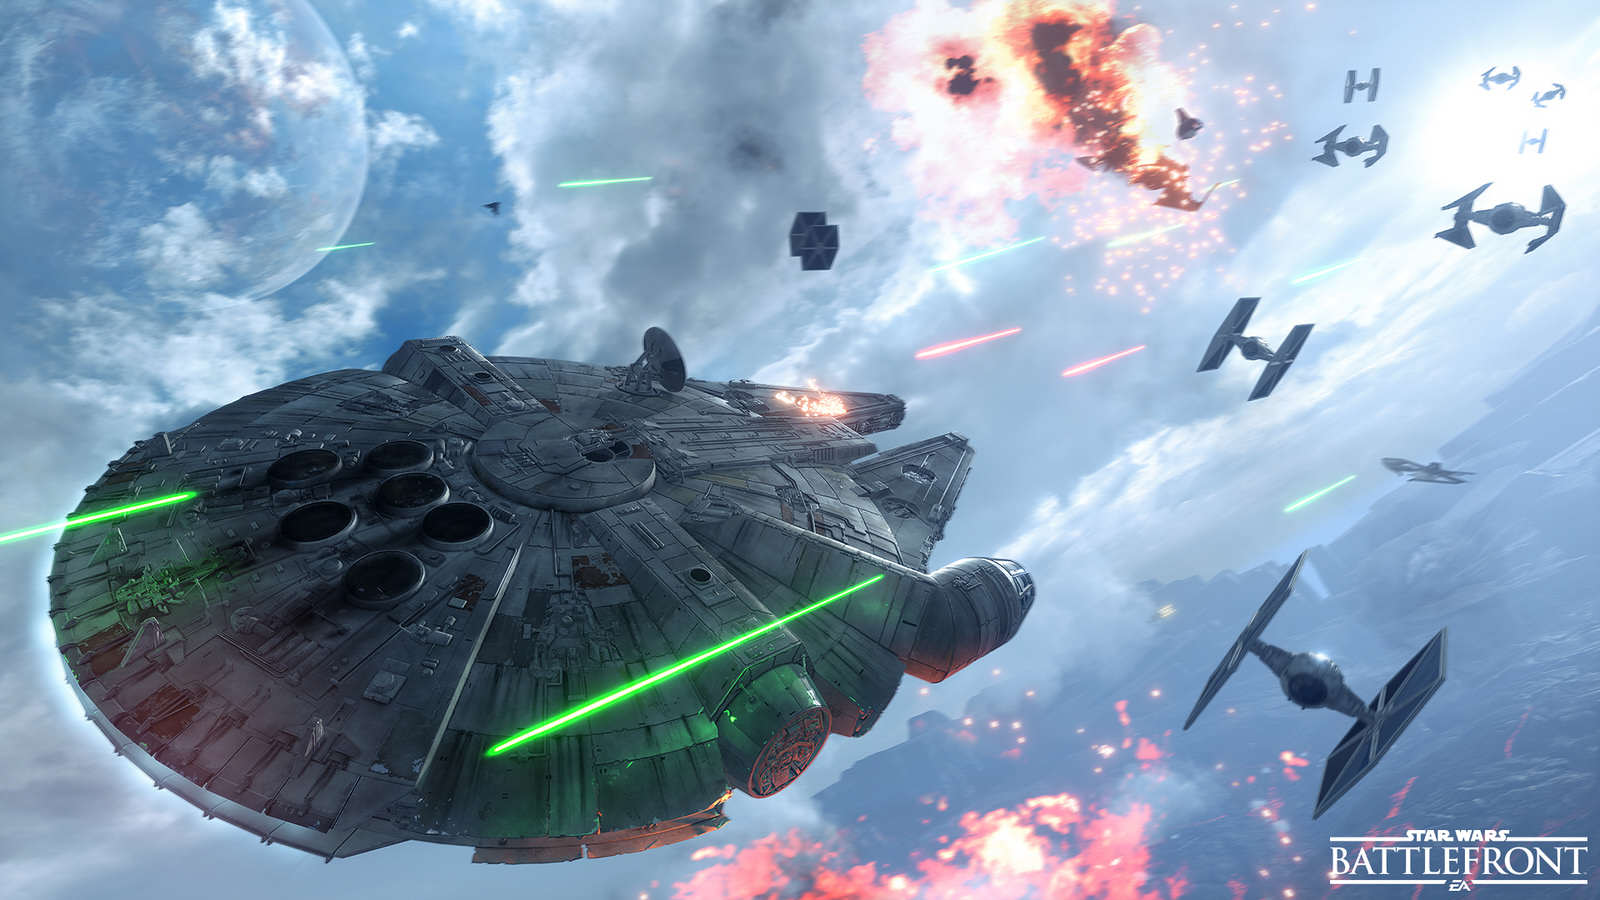 Star Wars Battlefront Gets A Major Update, New Maps, And More 22378564061 b2eef69a83 h